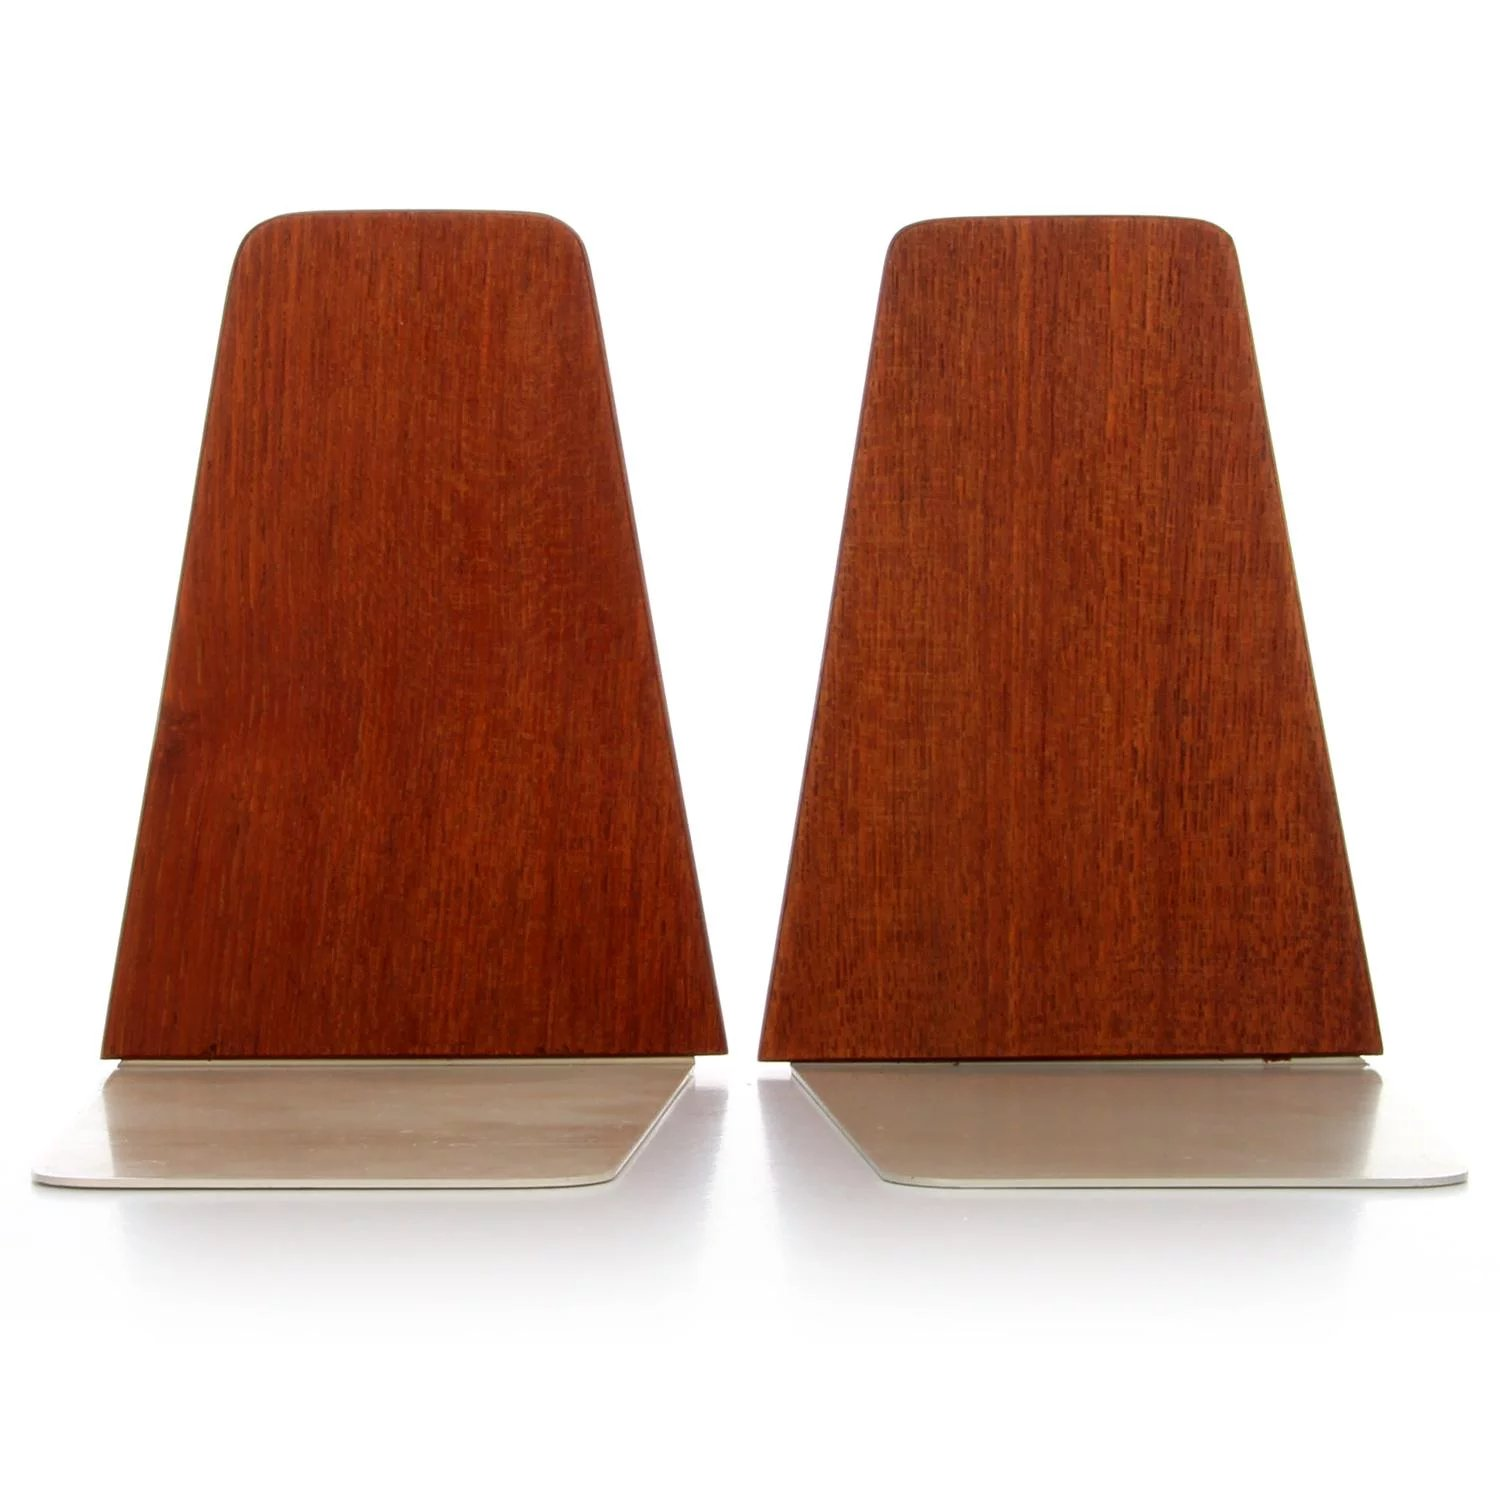 a9a9f91e427c TEAK BOOKENDS PAIR - Danish mid century modern bookends with steel ...